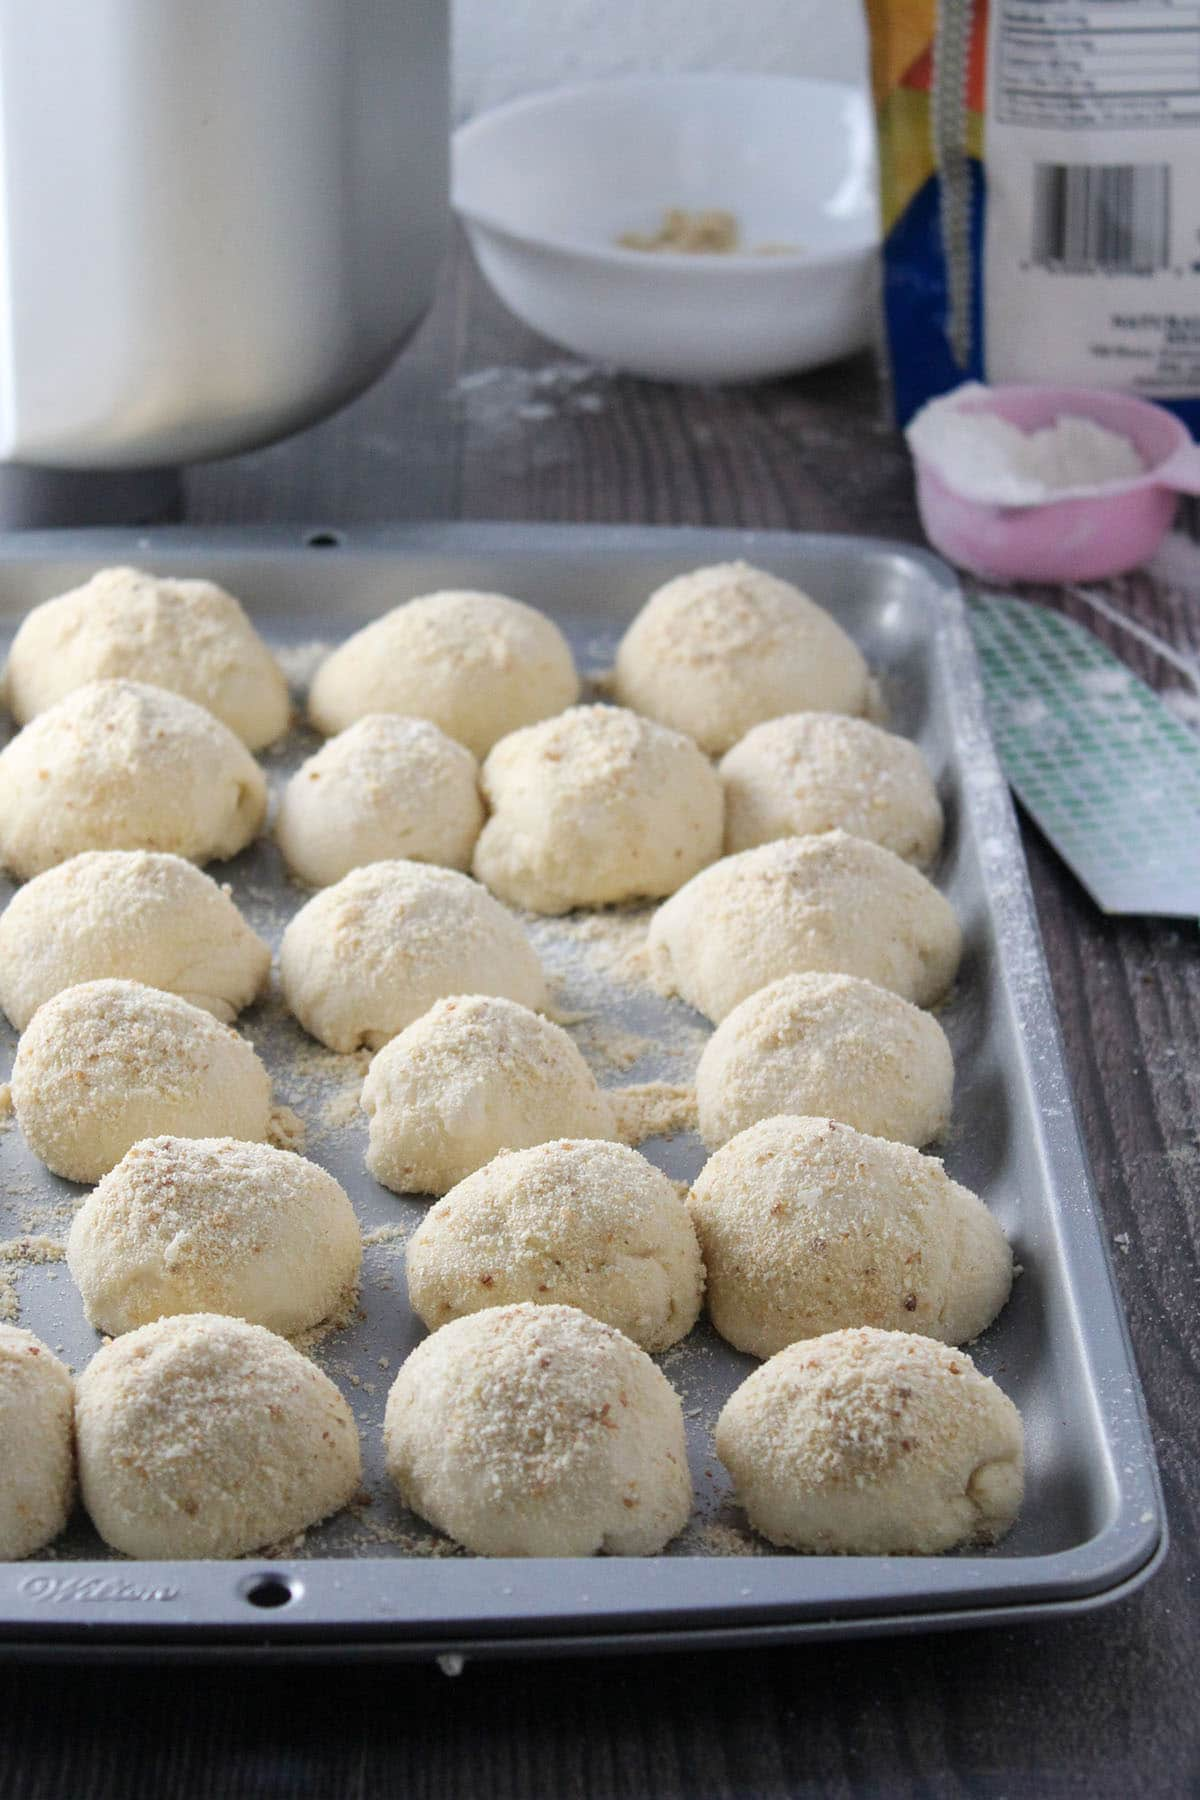 The shaped pandesal dough ready for second rise.